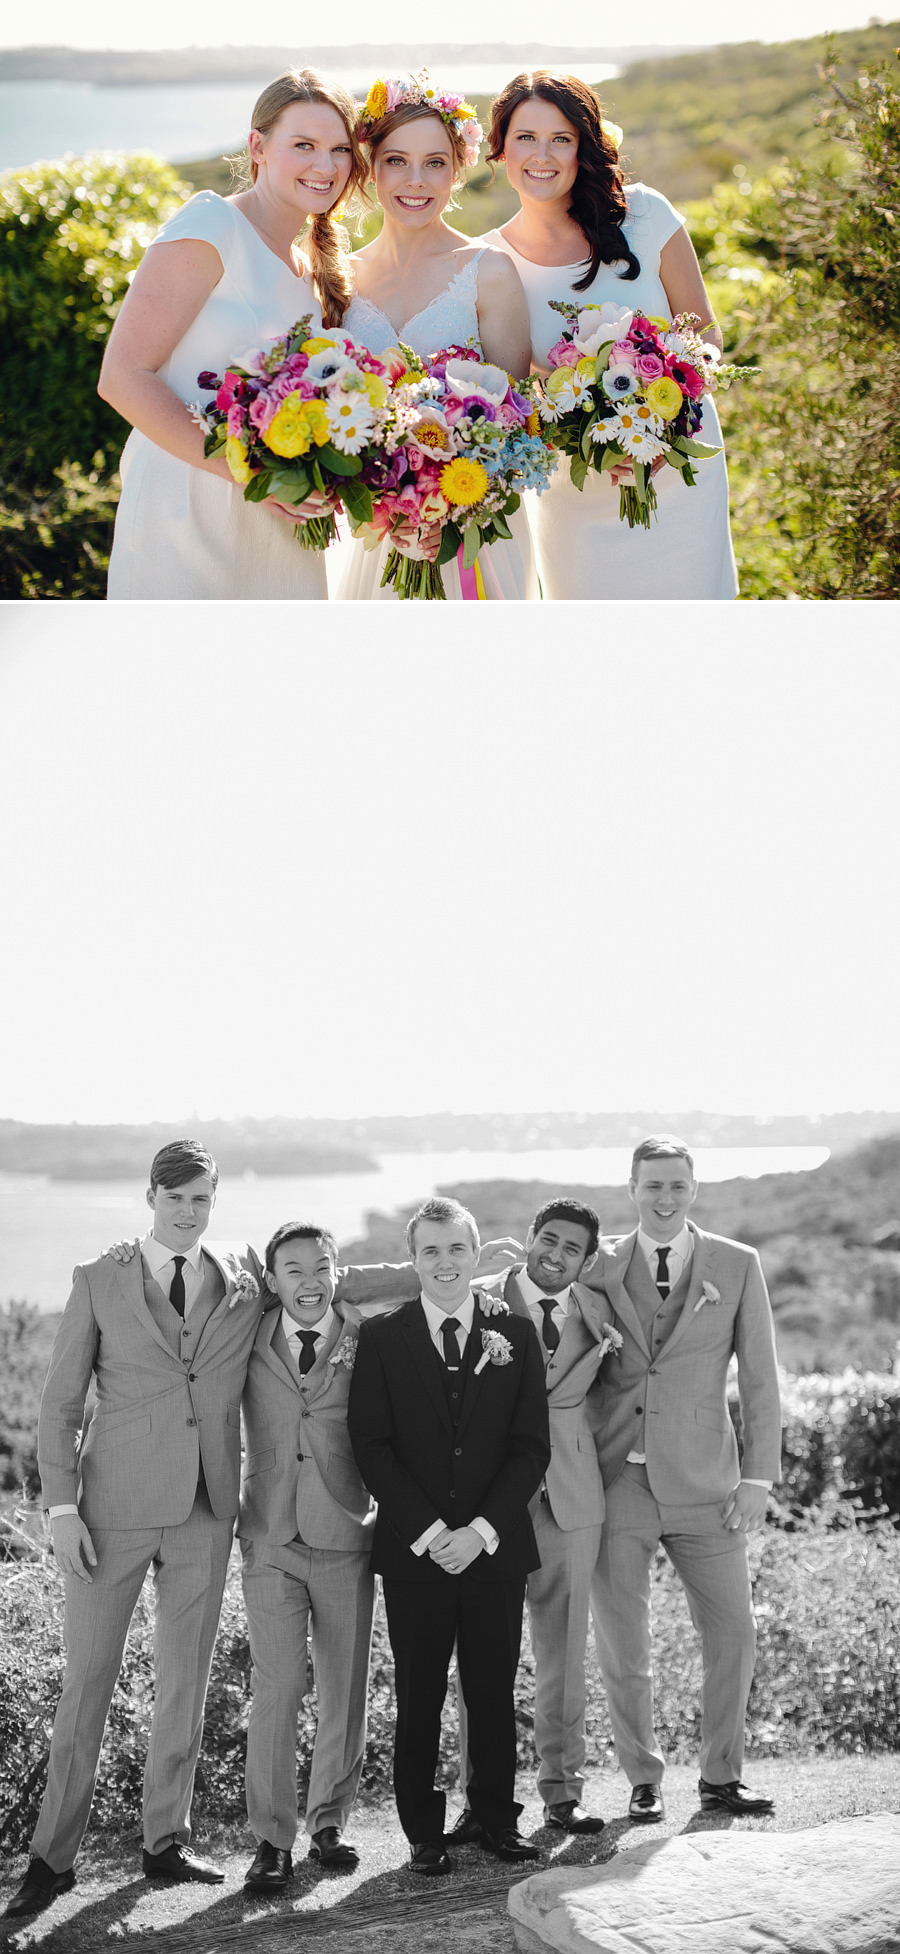 North Head Wedding Photographer: Bridal Party Portraits